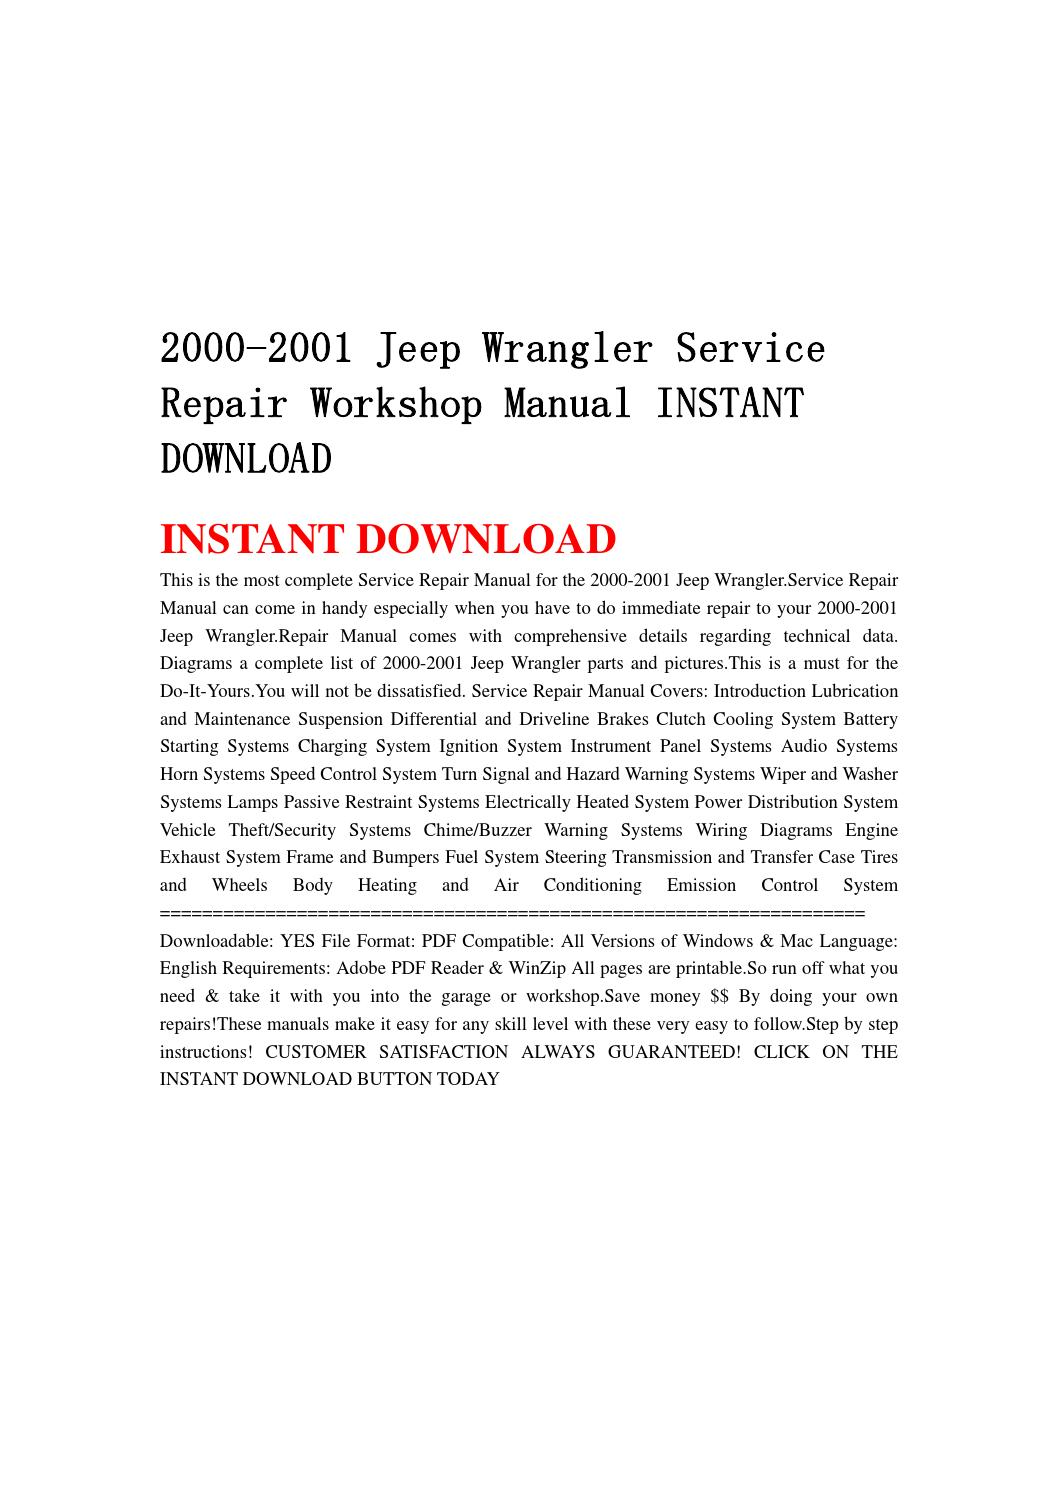 2000 2001 jeep wrangler service repair workshop manual instant download by  hytggse - issuu